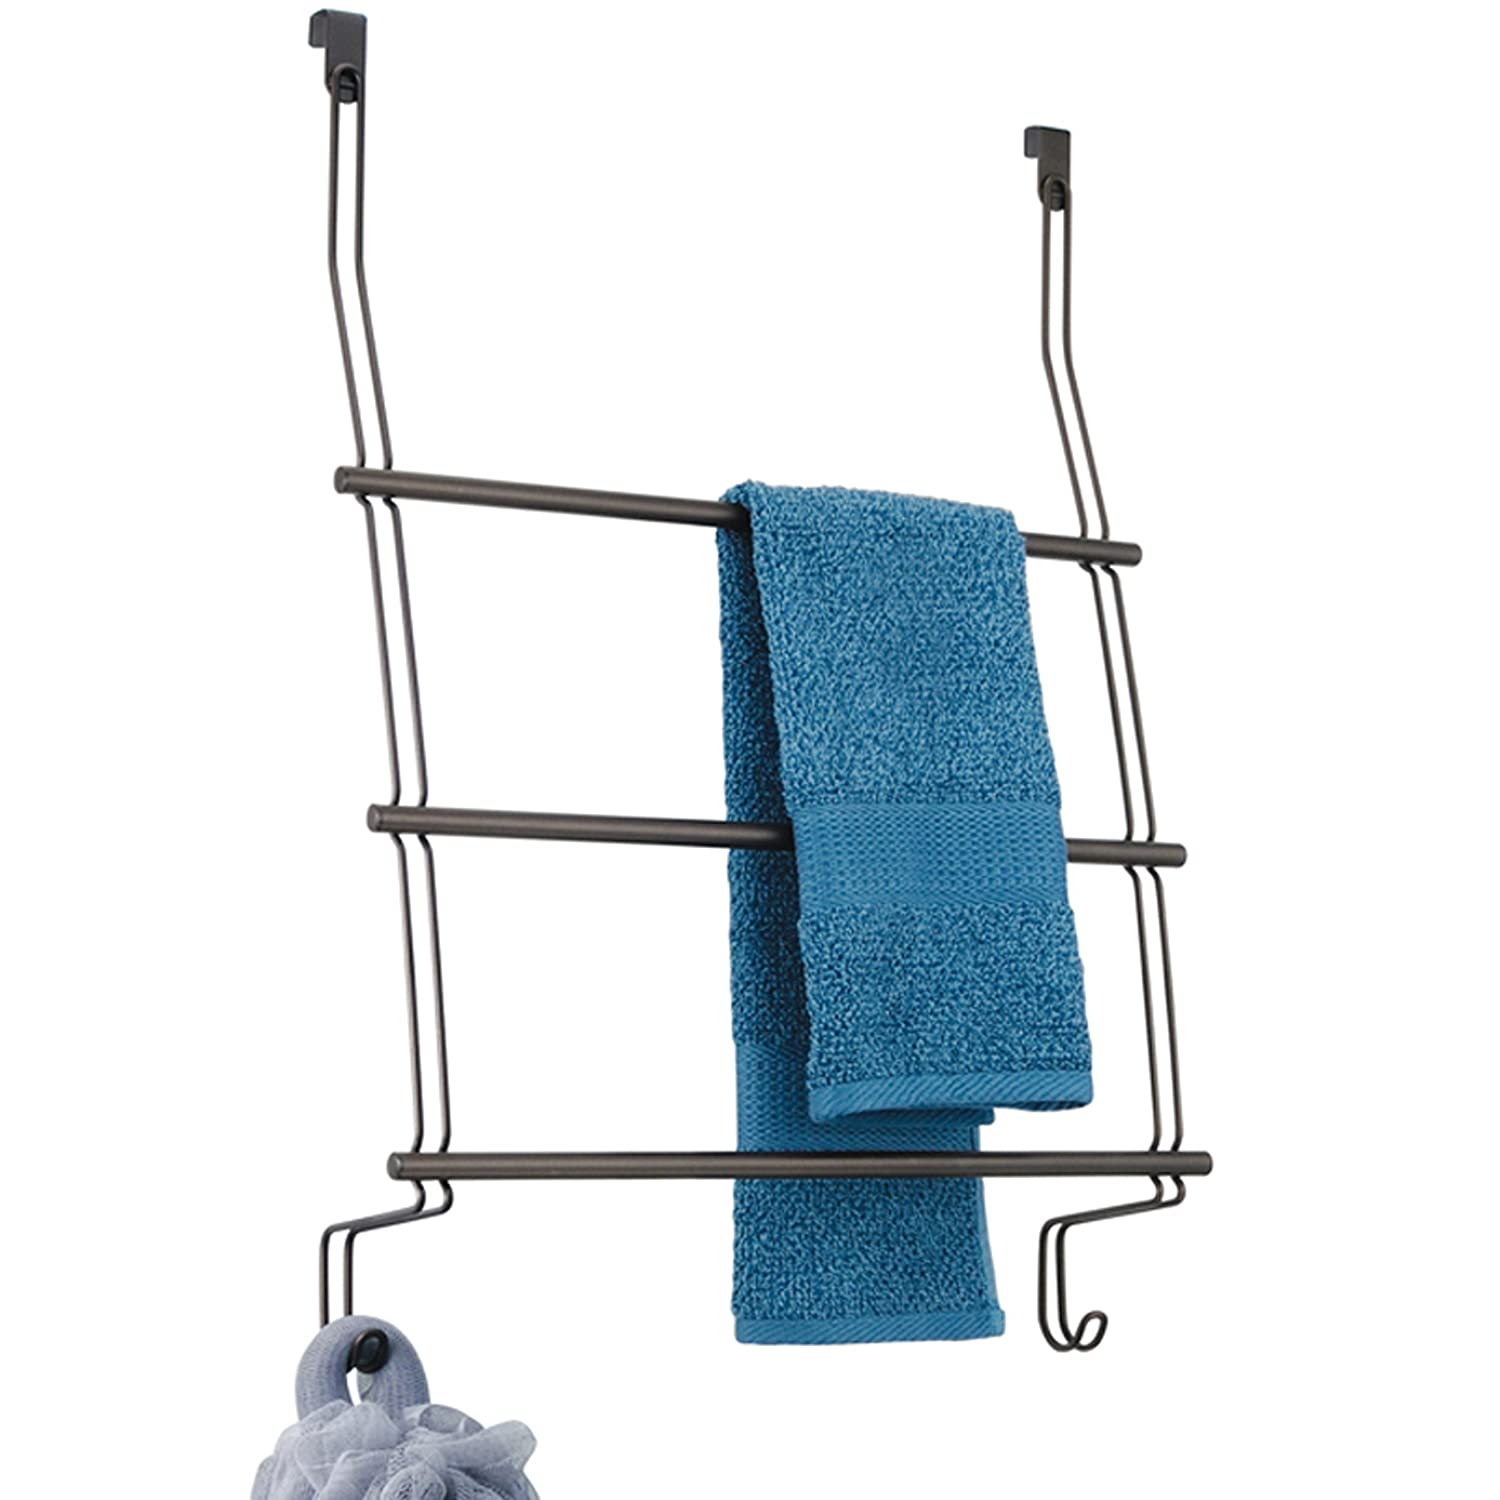 Towel Racks Wall Racks & Racks